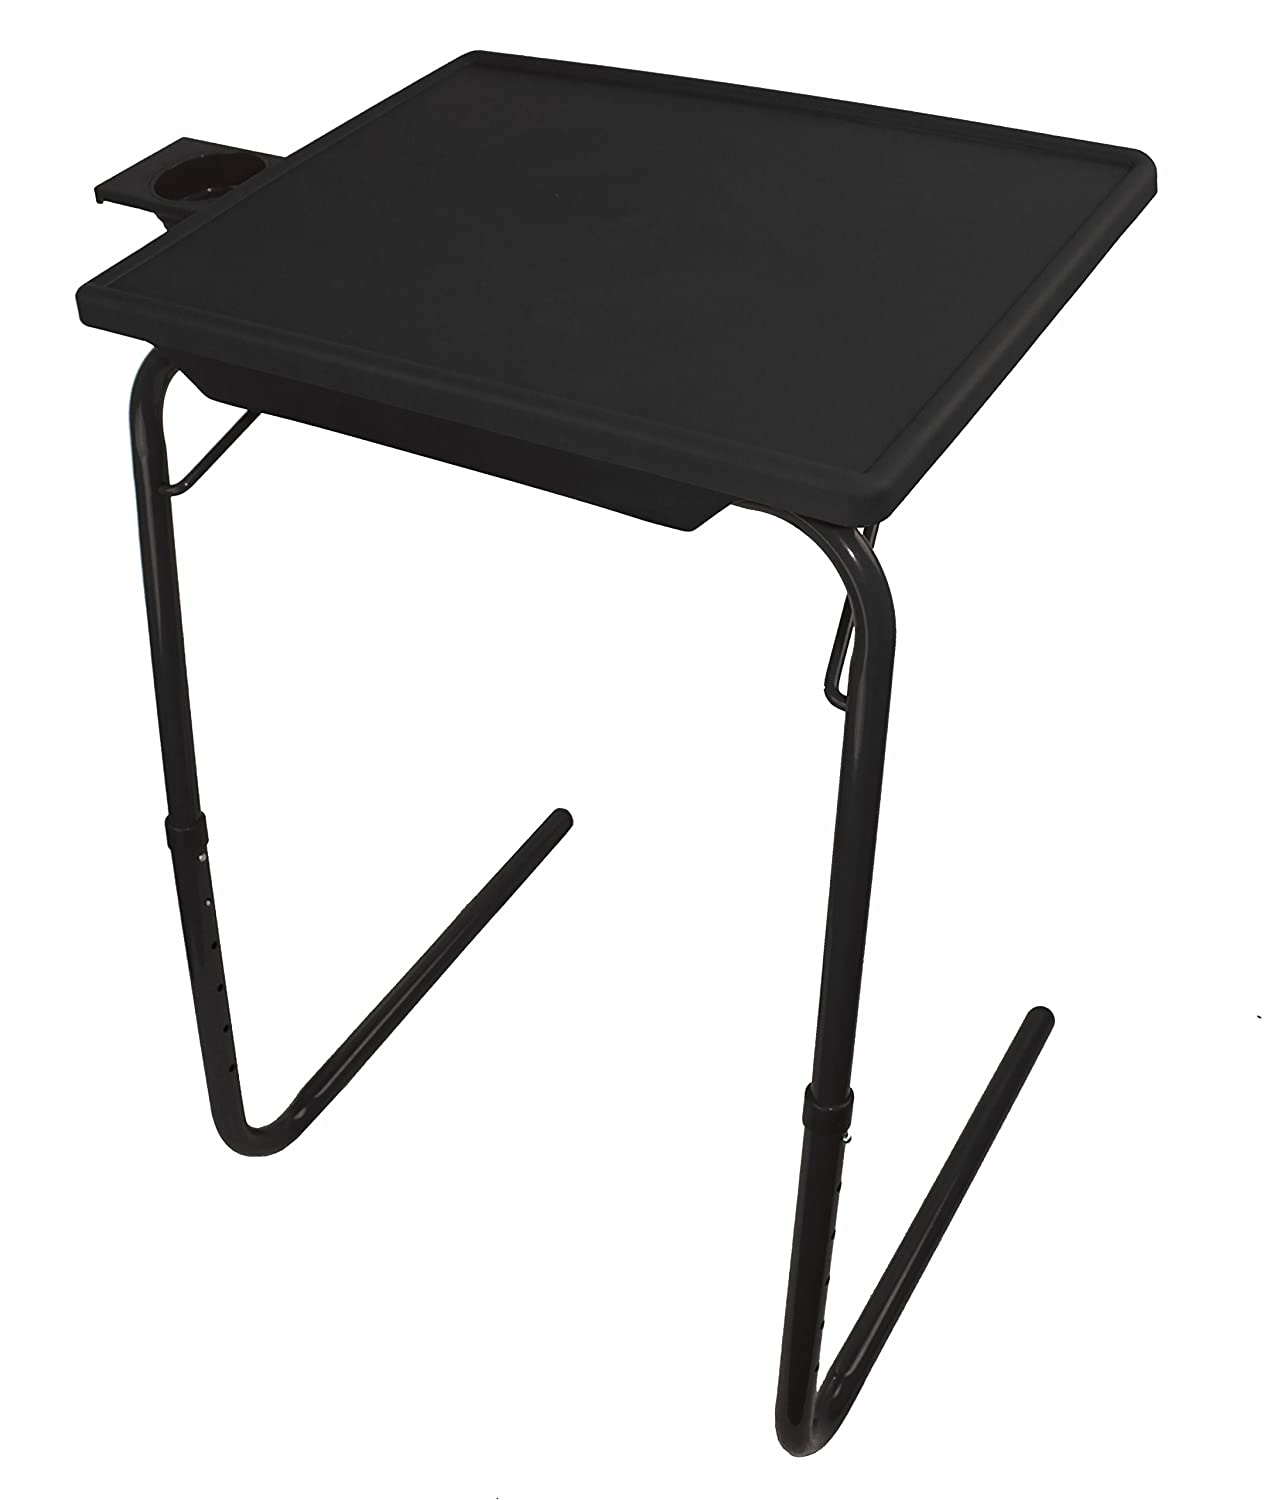 Elegant Amazon.com: 5starsuperdeal Portable And Foldable Tray Table (Black):  Kitchen U0026 Dining